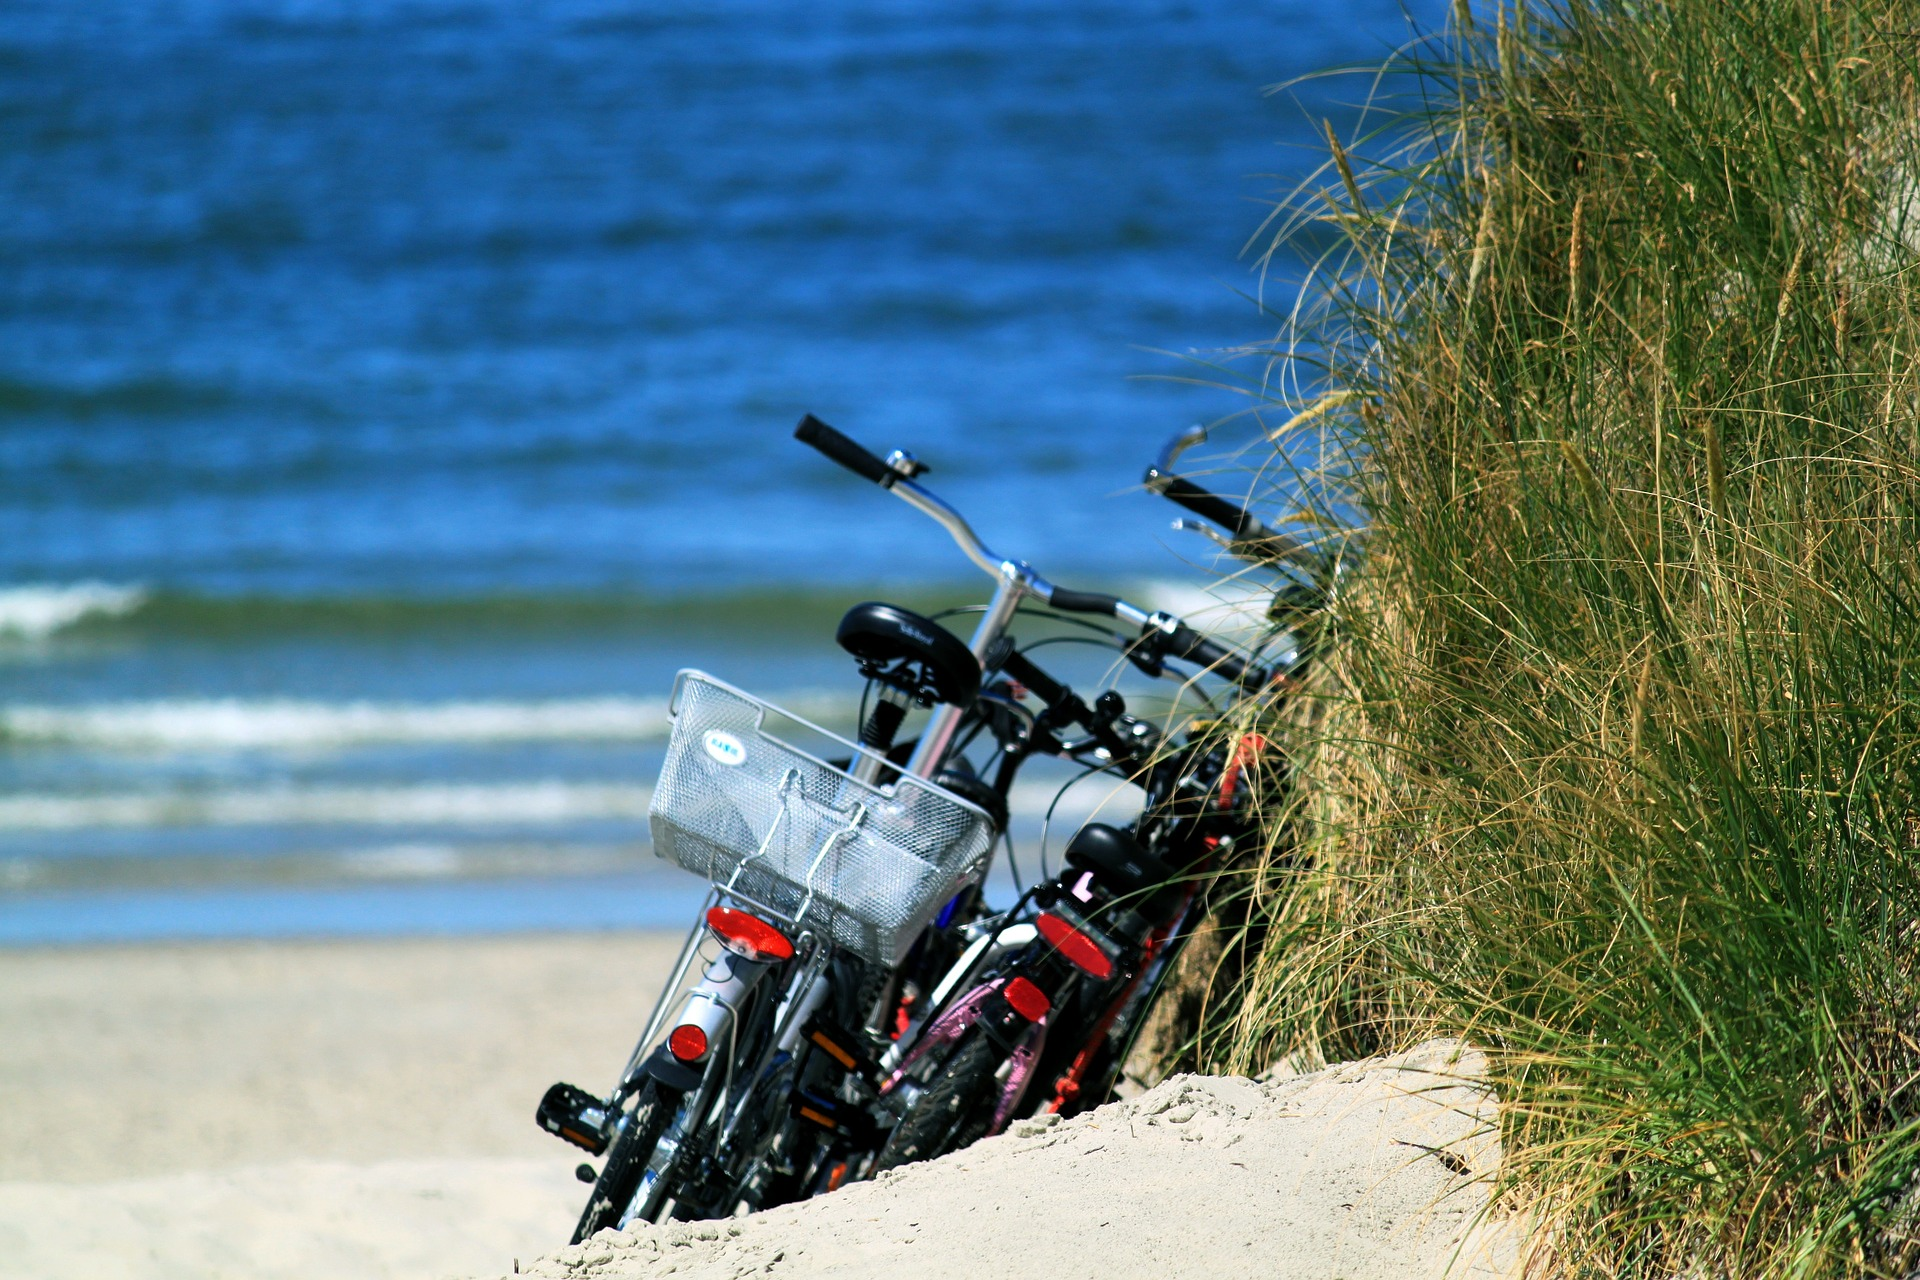 Bikes left by a dune on a beach on a sunny day with waves and beach grass